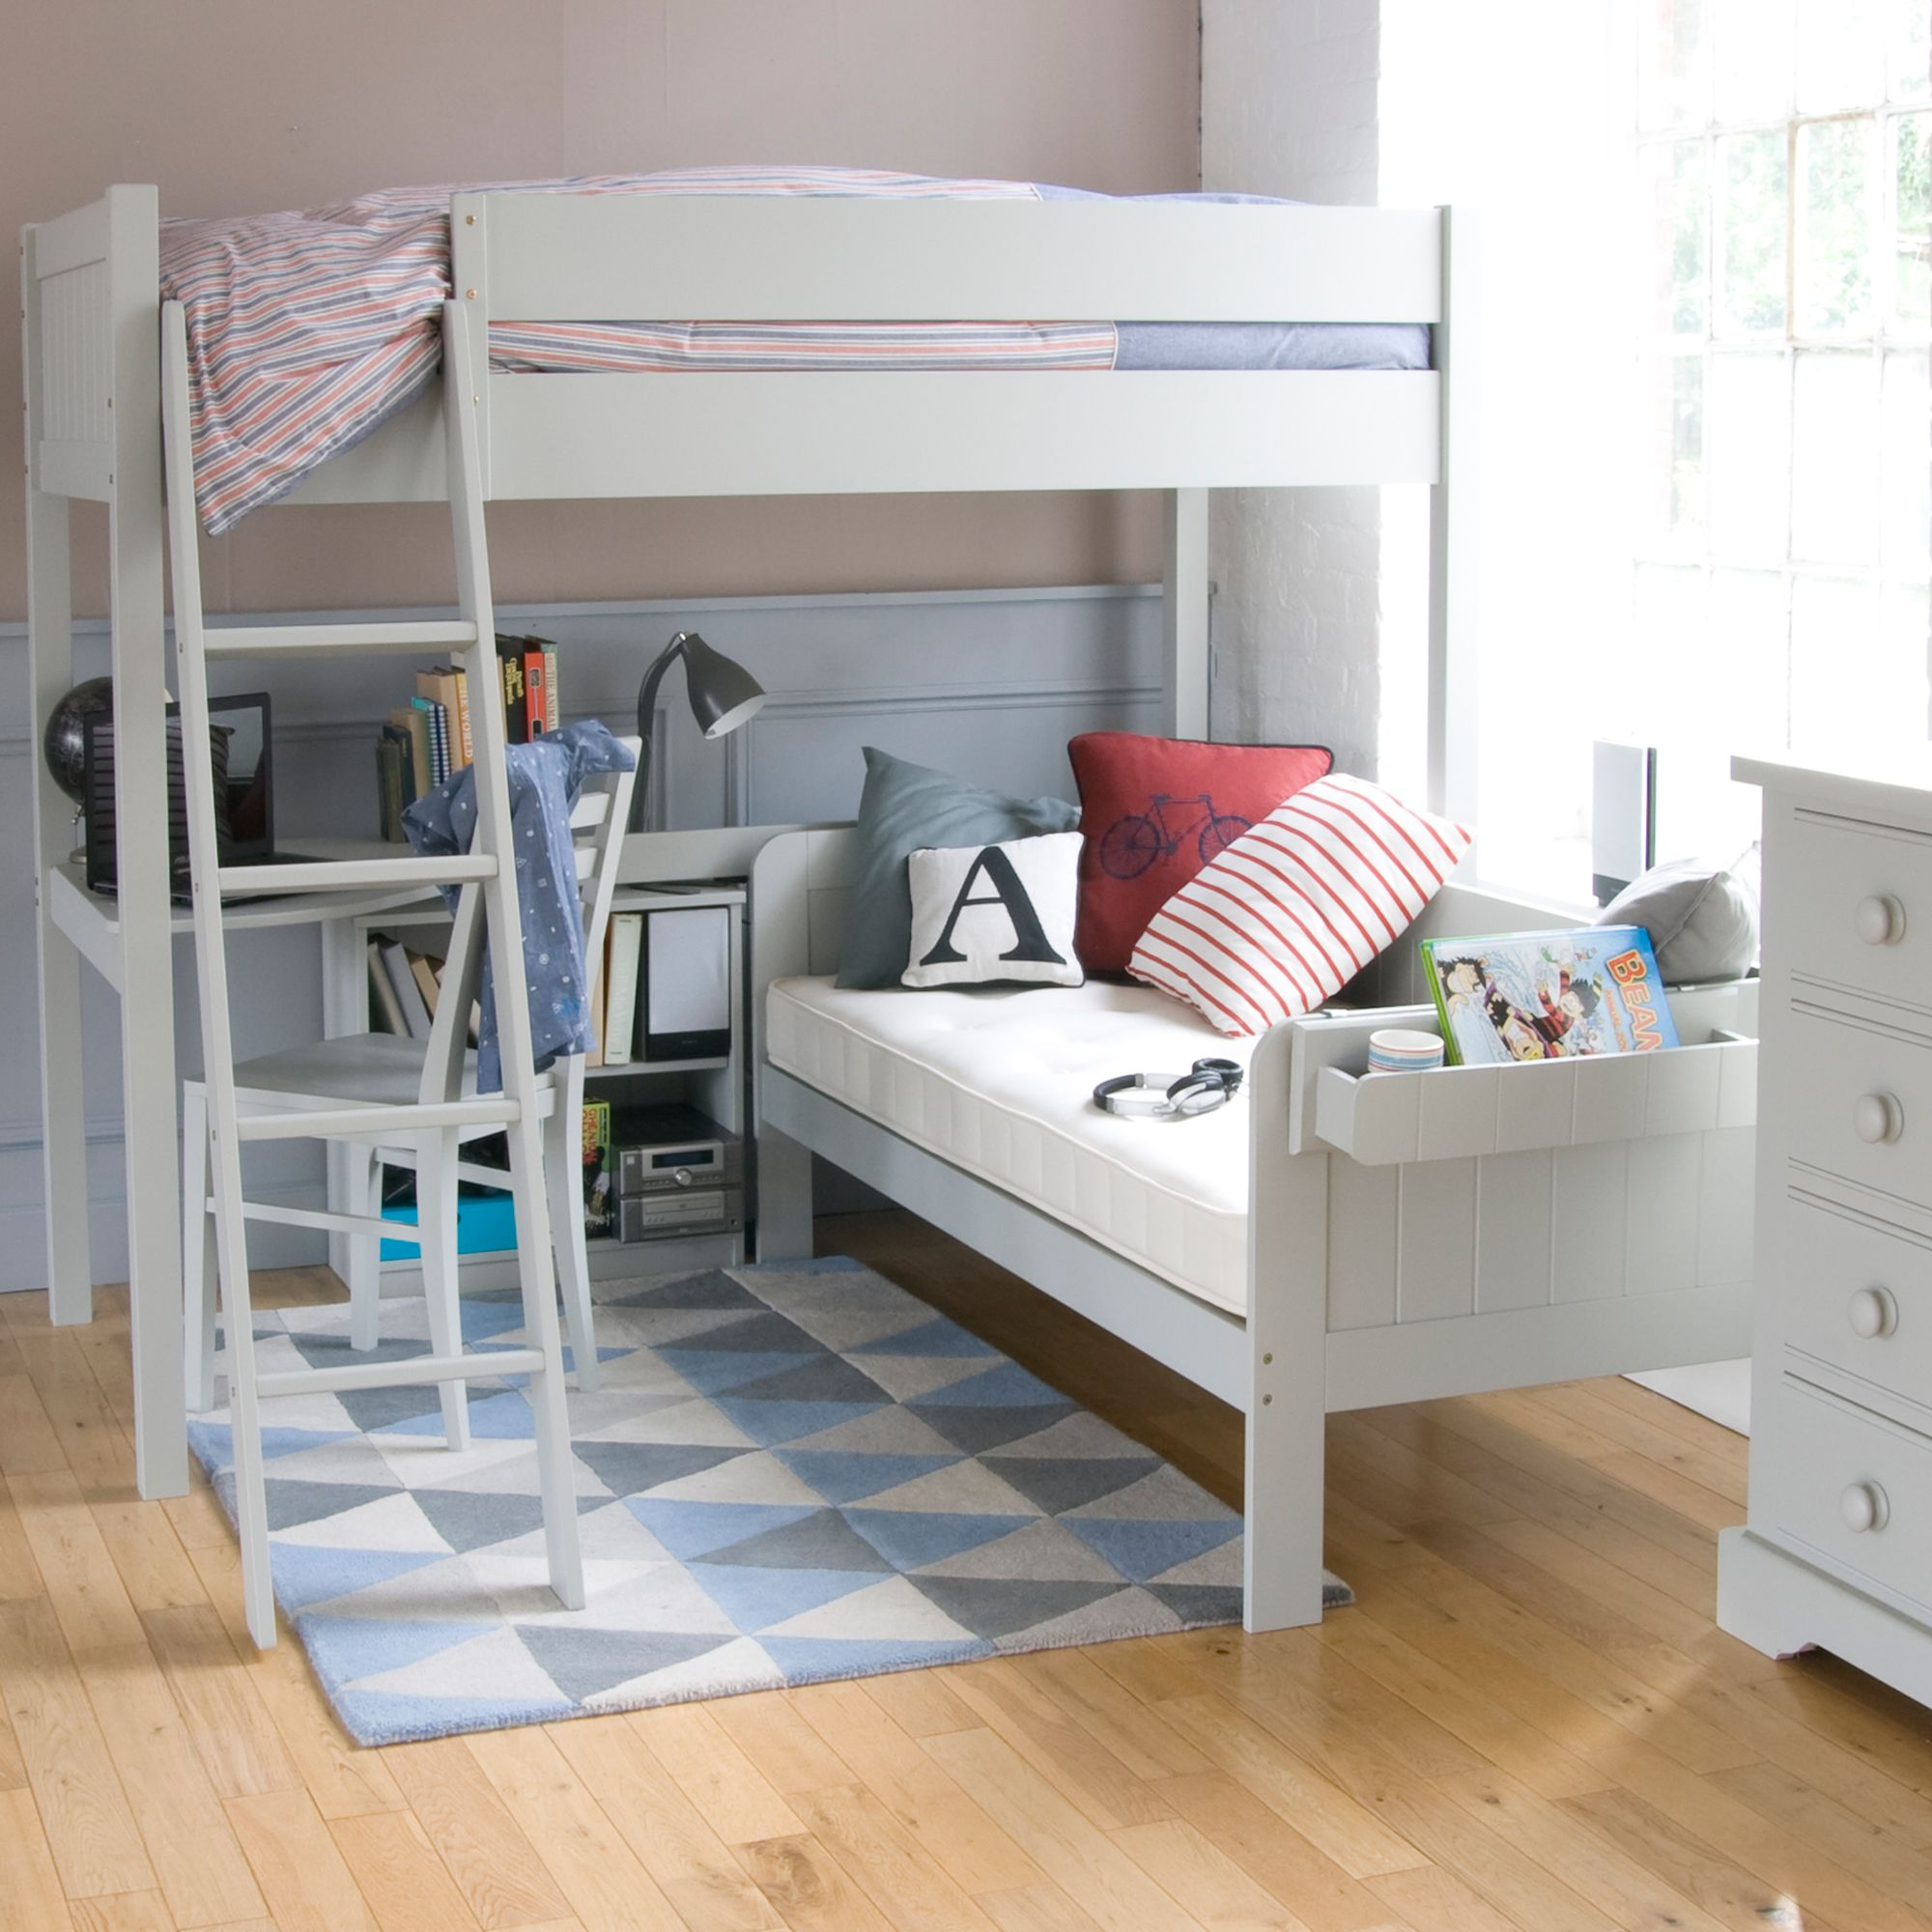 9 Small Bedroom Ideas To Fall In Love With – Small Bedroom